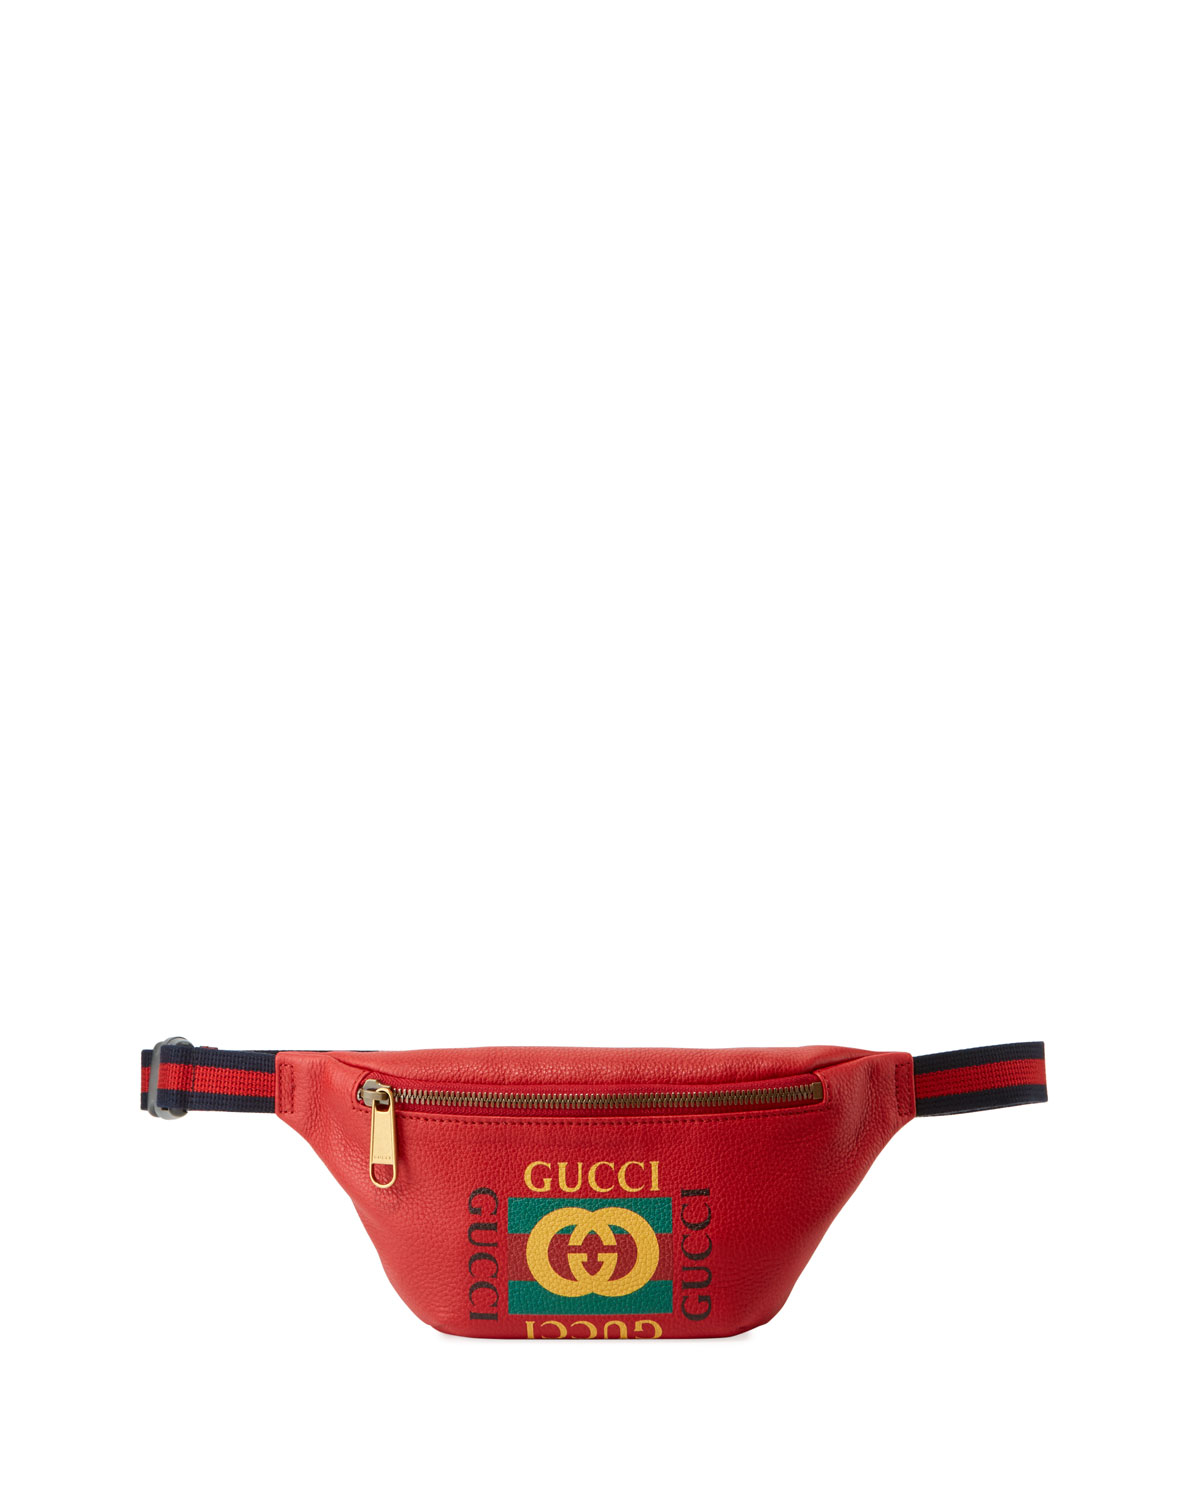 c2a648e2c18 Gucci Men s Small Retro Leather Fanny Pack Belt Bag